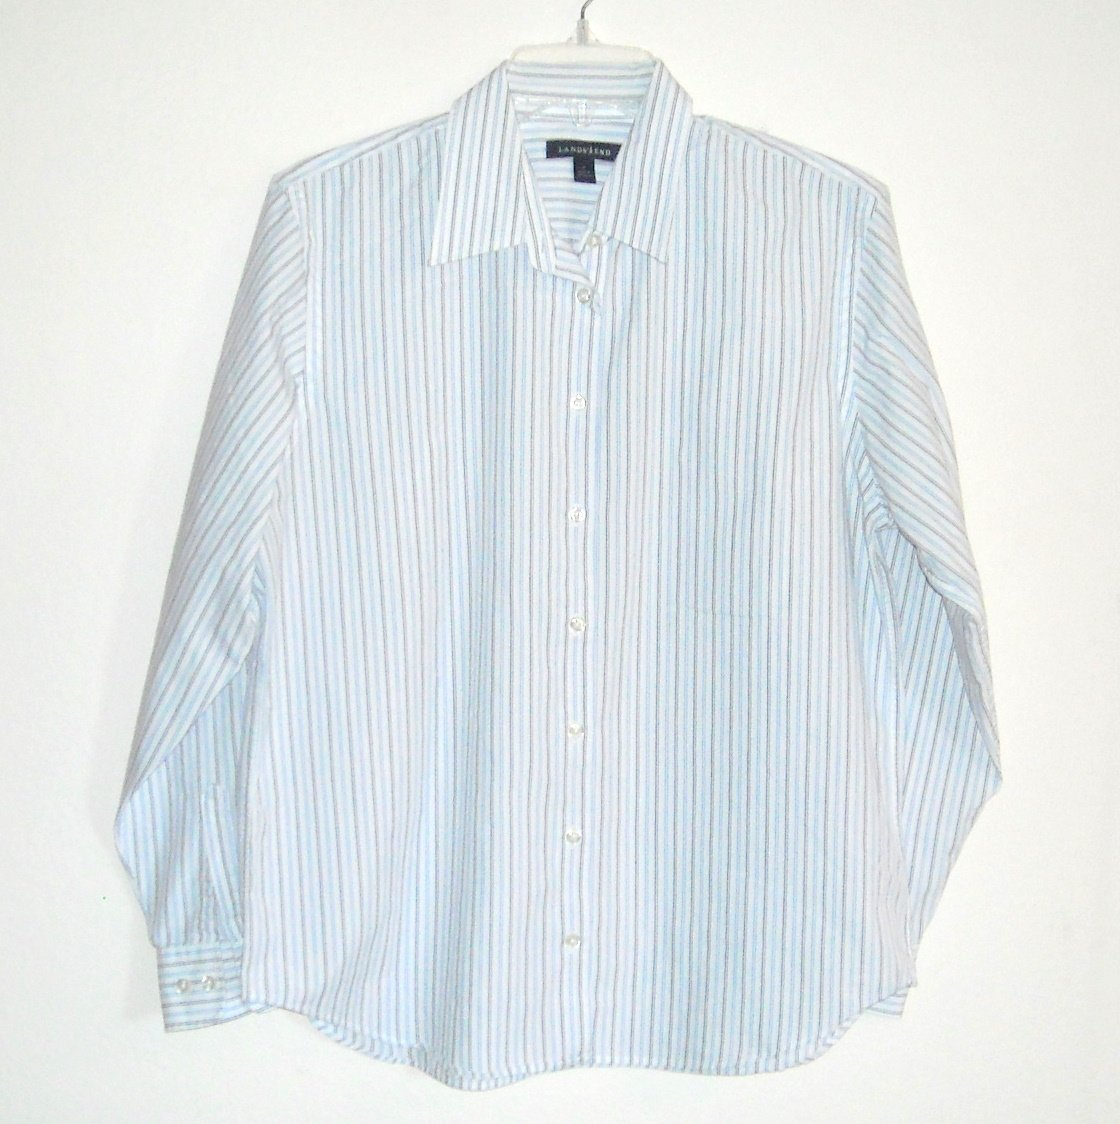 Lands End Misses Womens White Striped Button Front Shirt Size 12